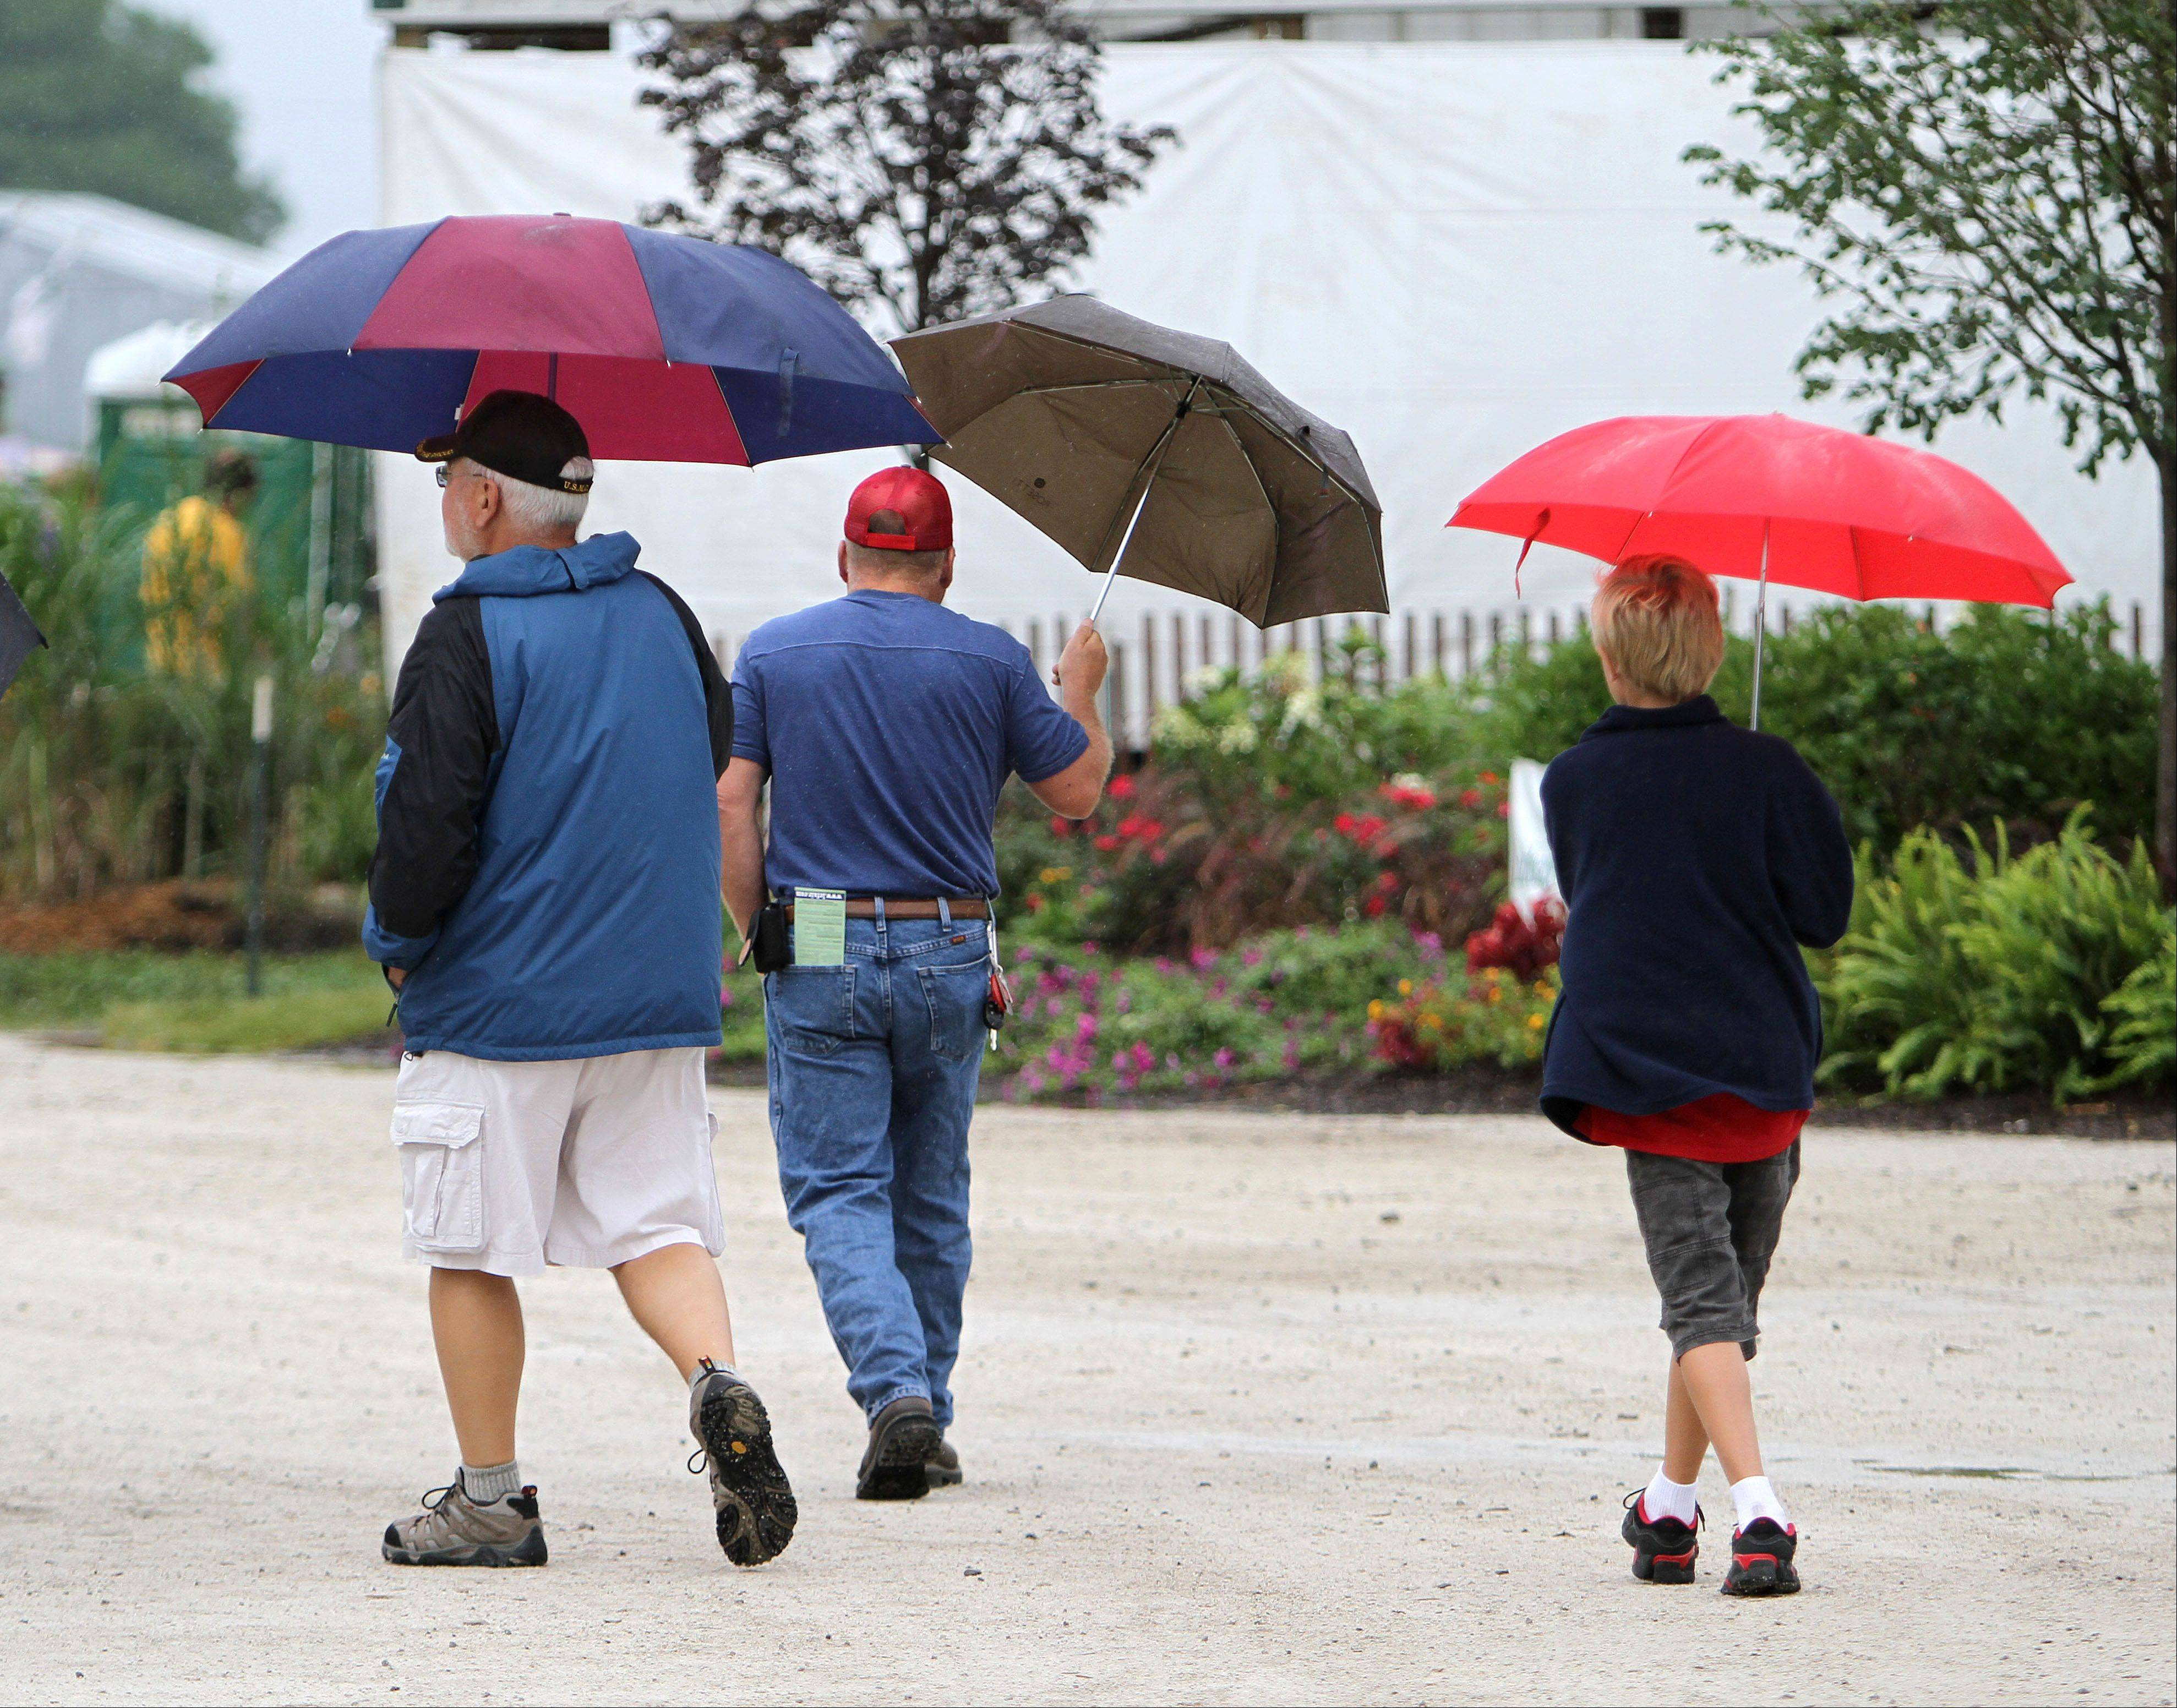 Umbrellas were in abundance at the Lake County Fair in Grayslake on Friday.